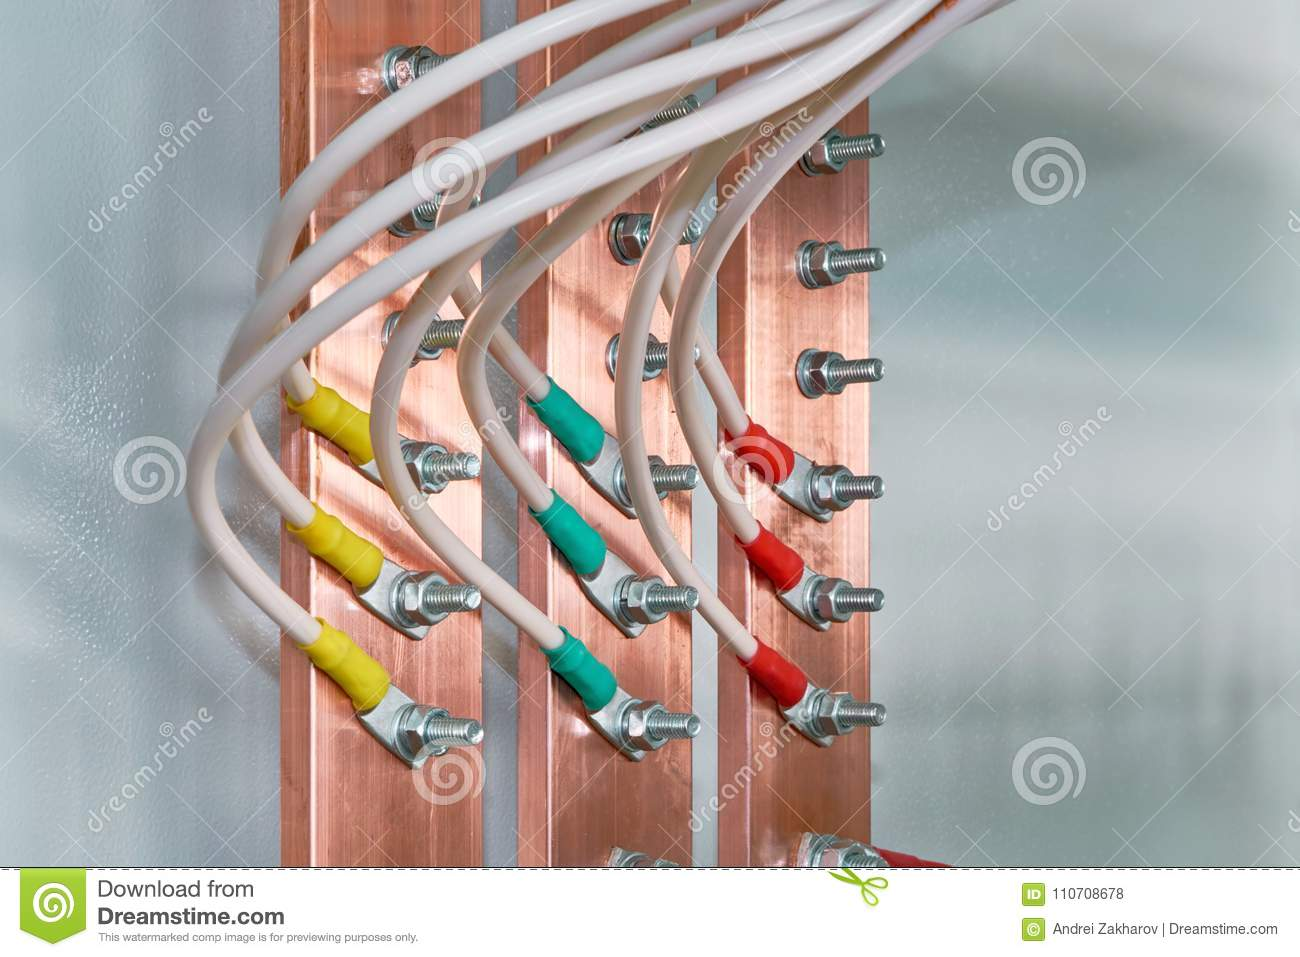 Electric Bus Bars Connected To It By Wires Or Cables Stock Photo C House Wiring